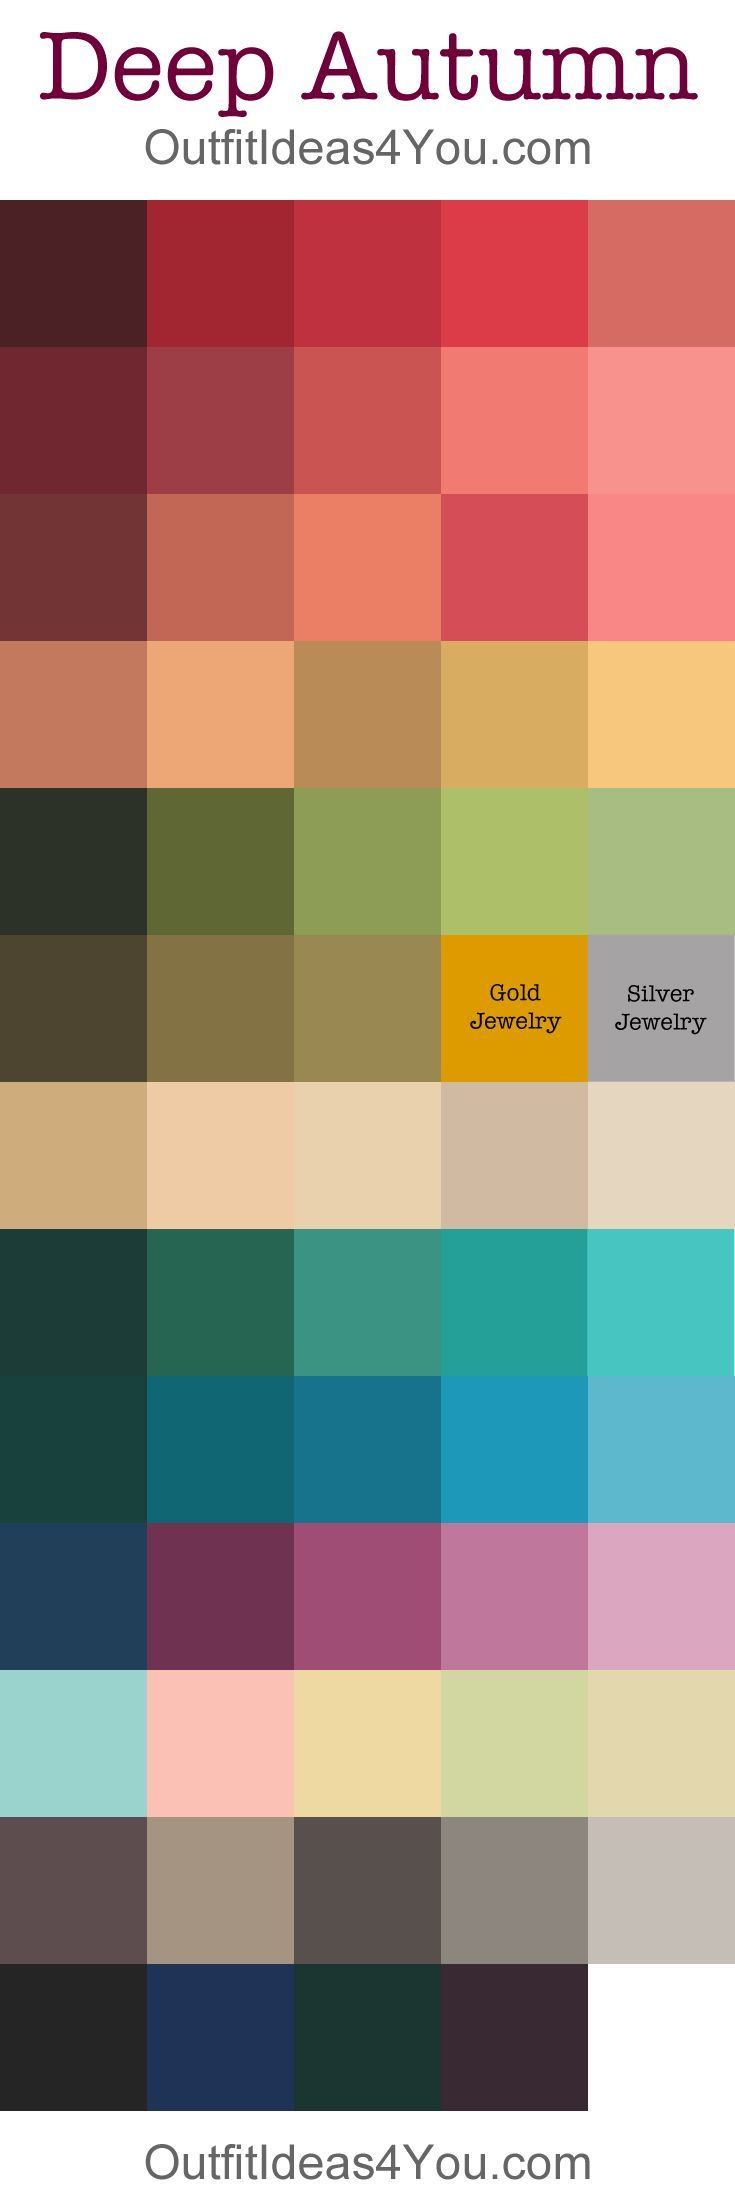 Deep Autumn Color Palette @outfitideas4u.... realy liked this  pallete